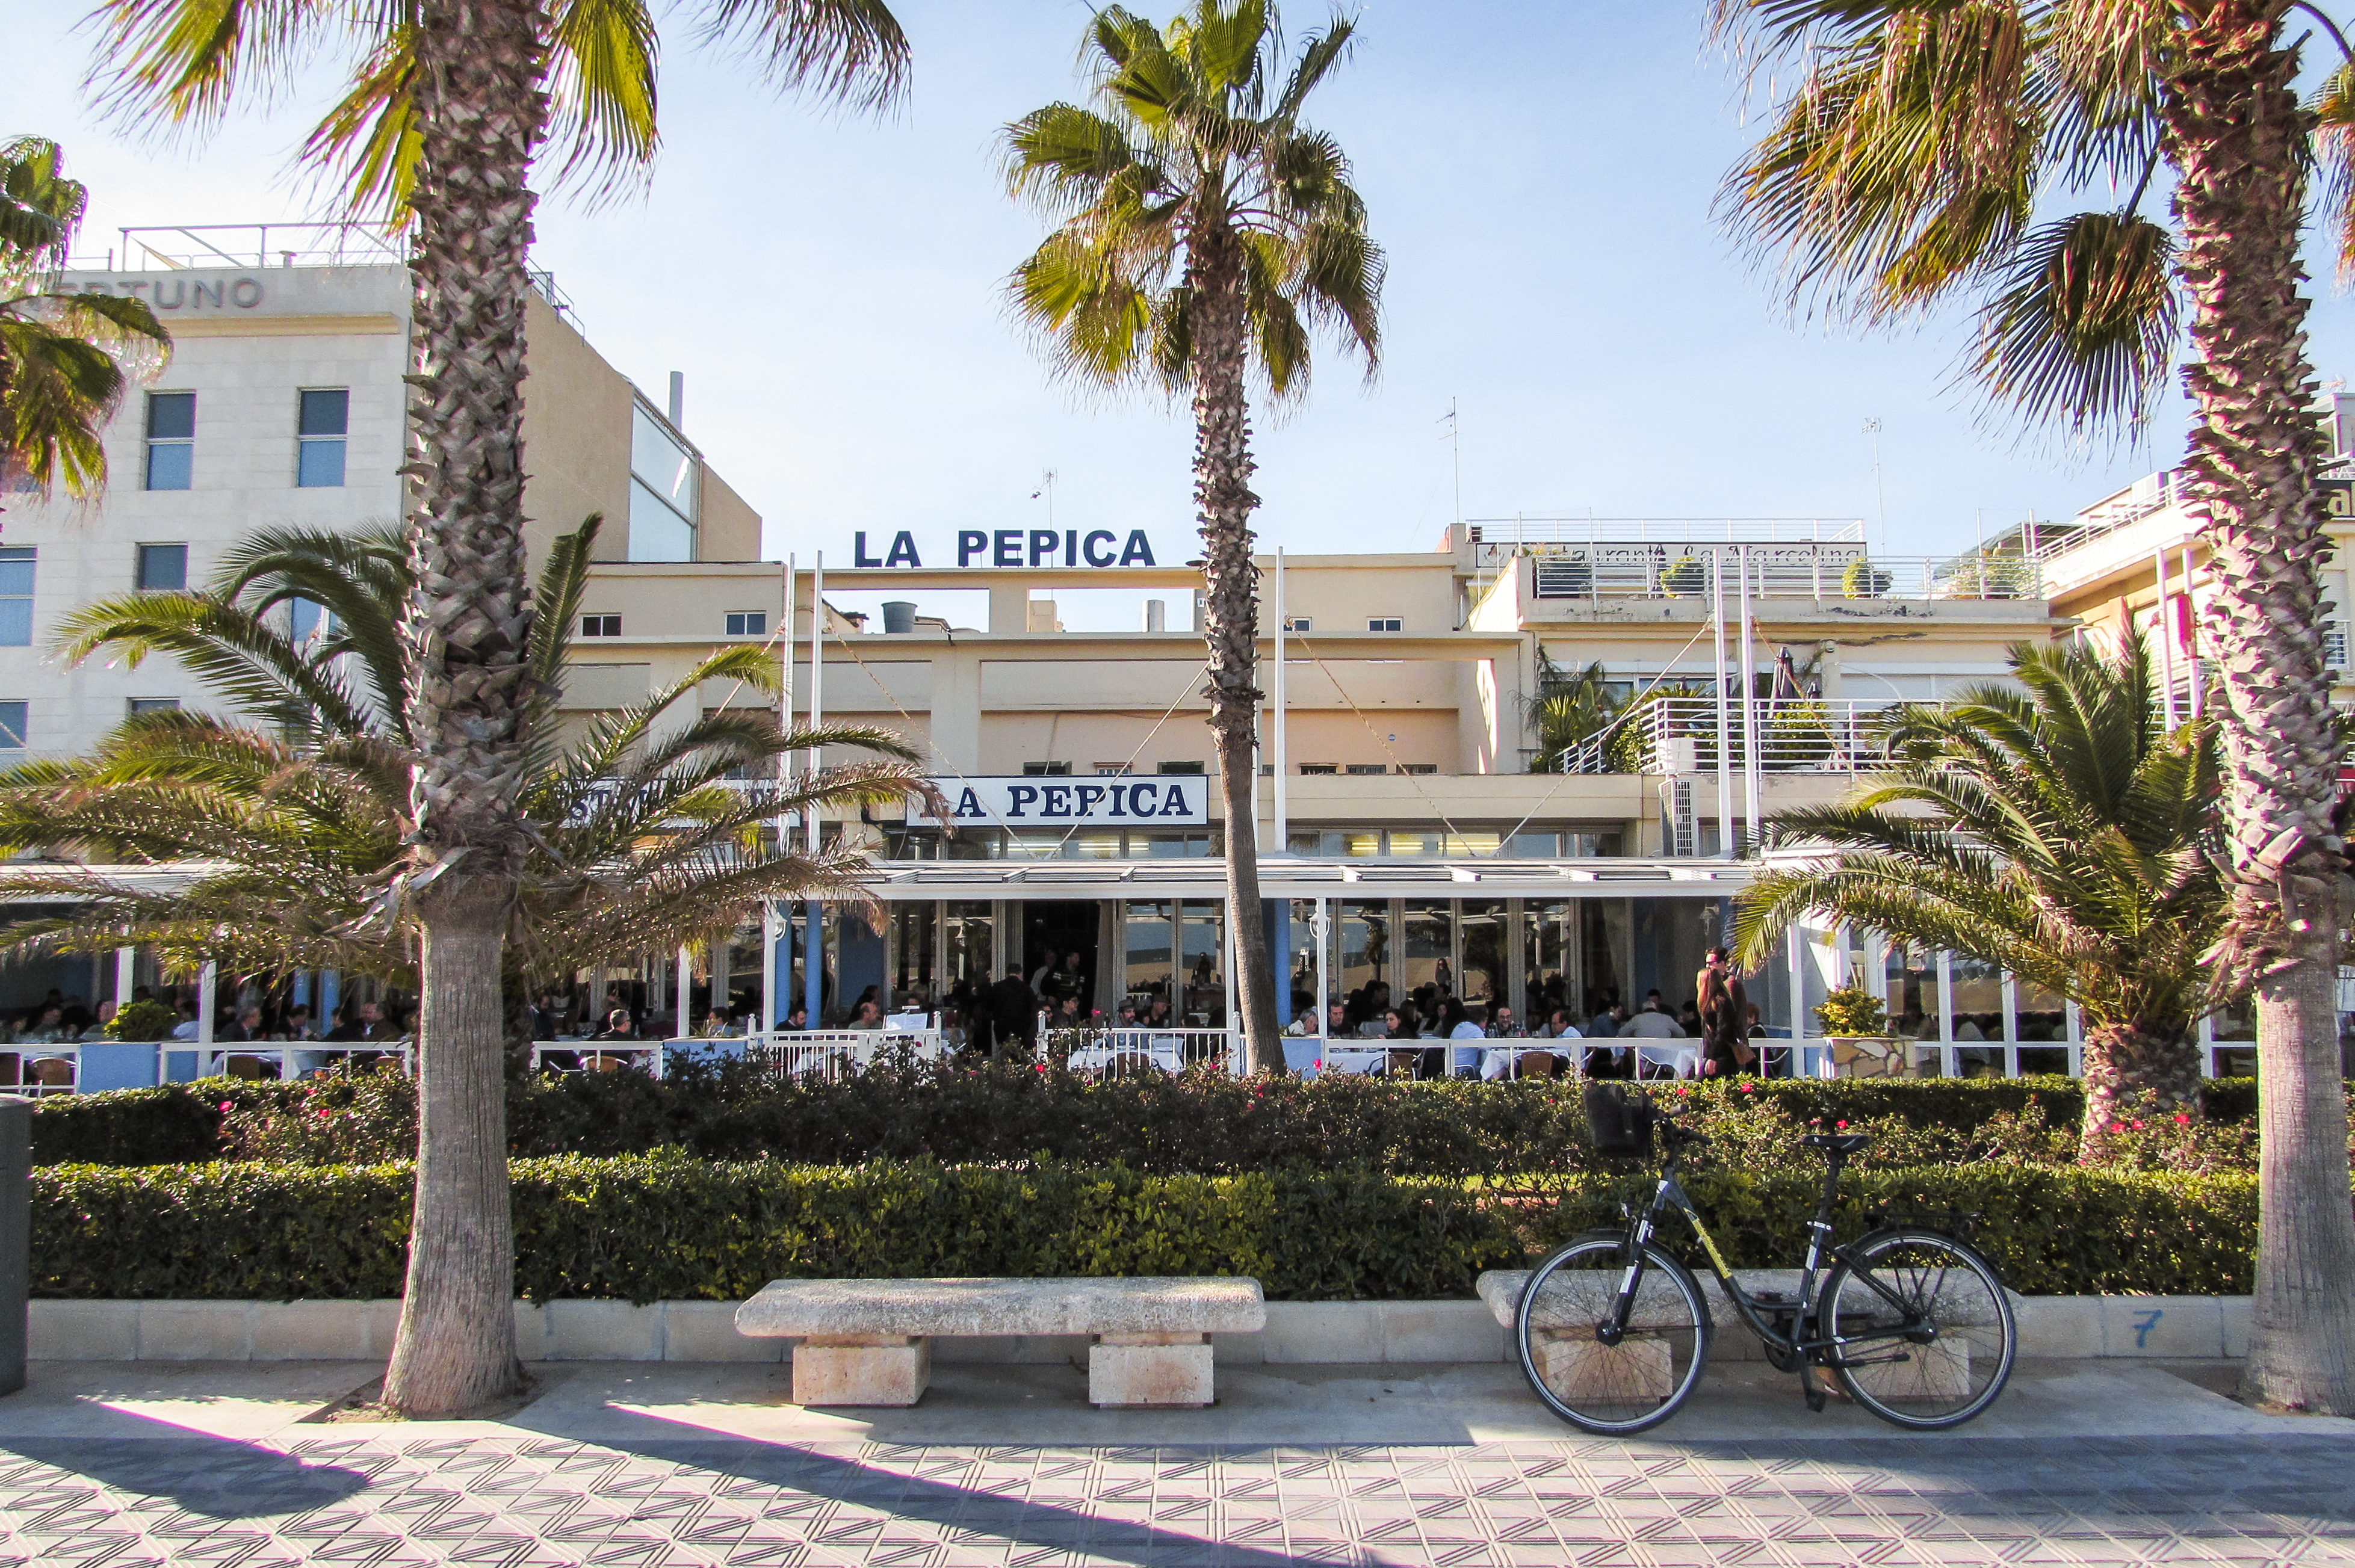 La Pepica paella restaurant by the beach in Valencia.